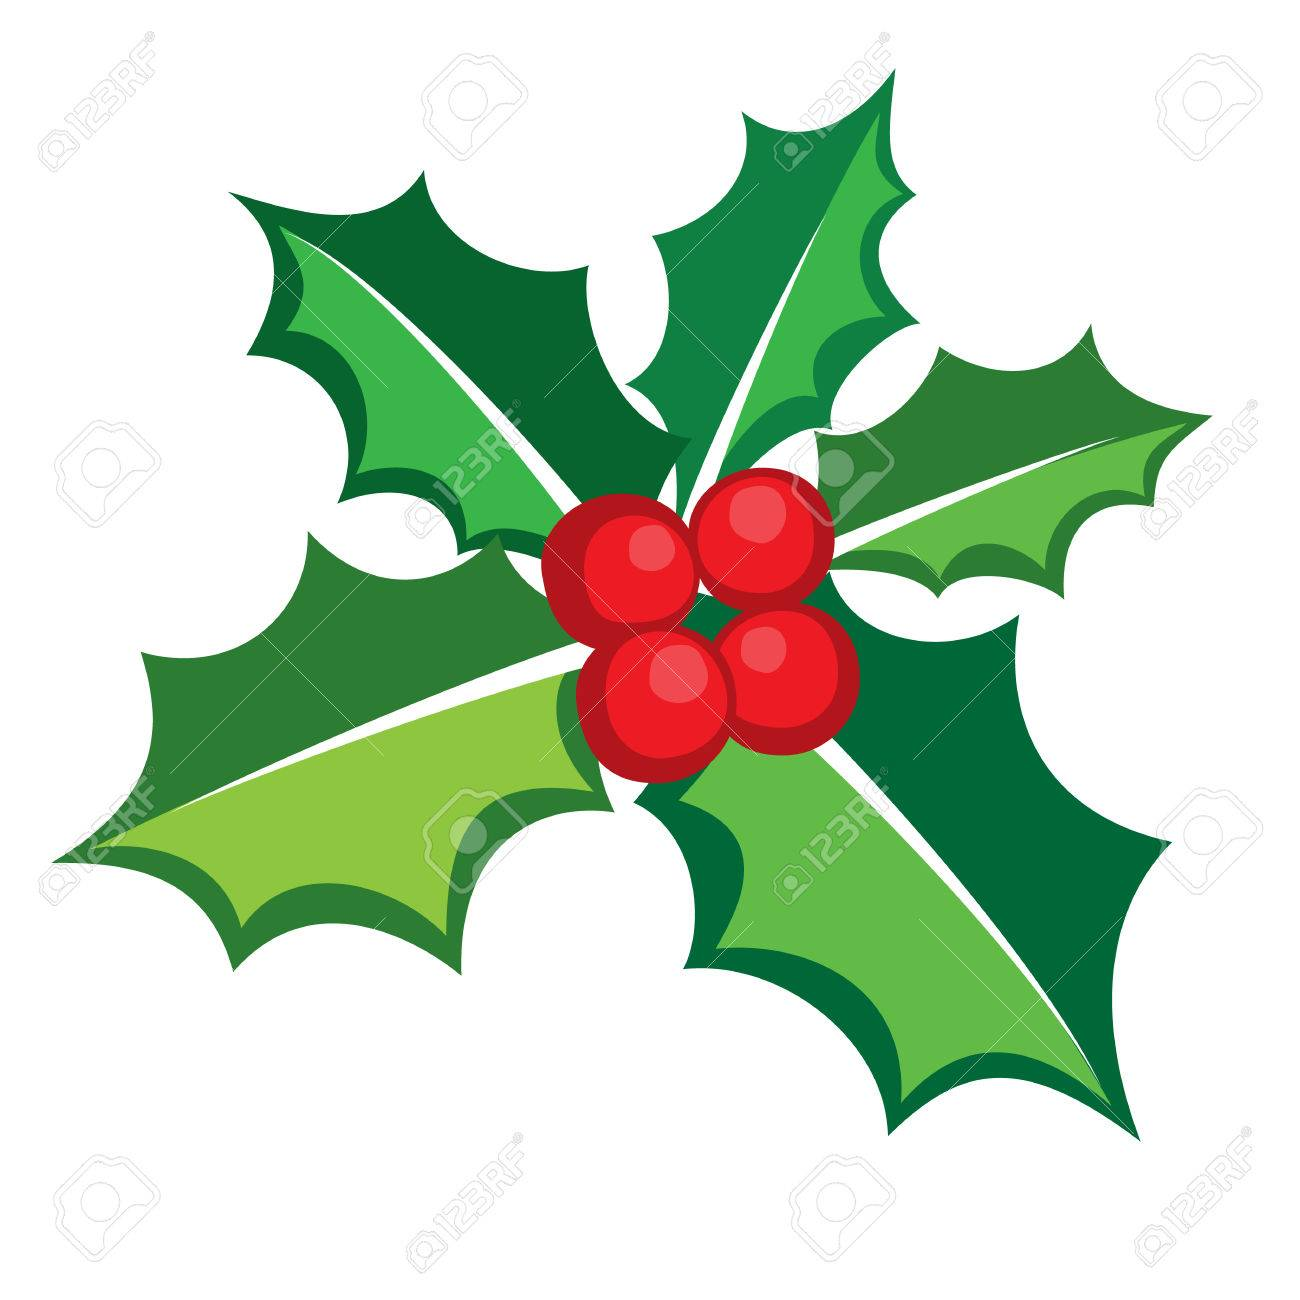 Christmas Holly berry icon banner, vector format.